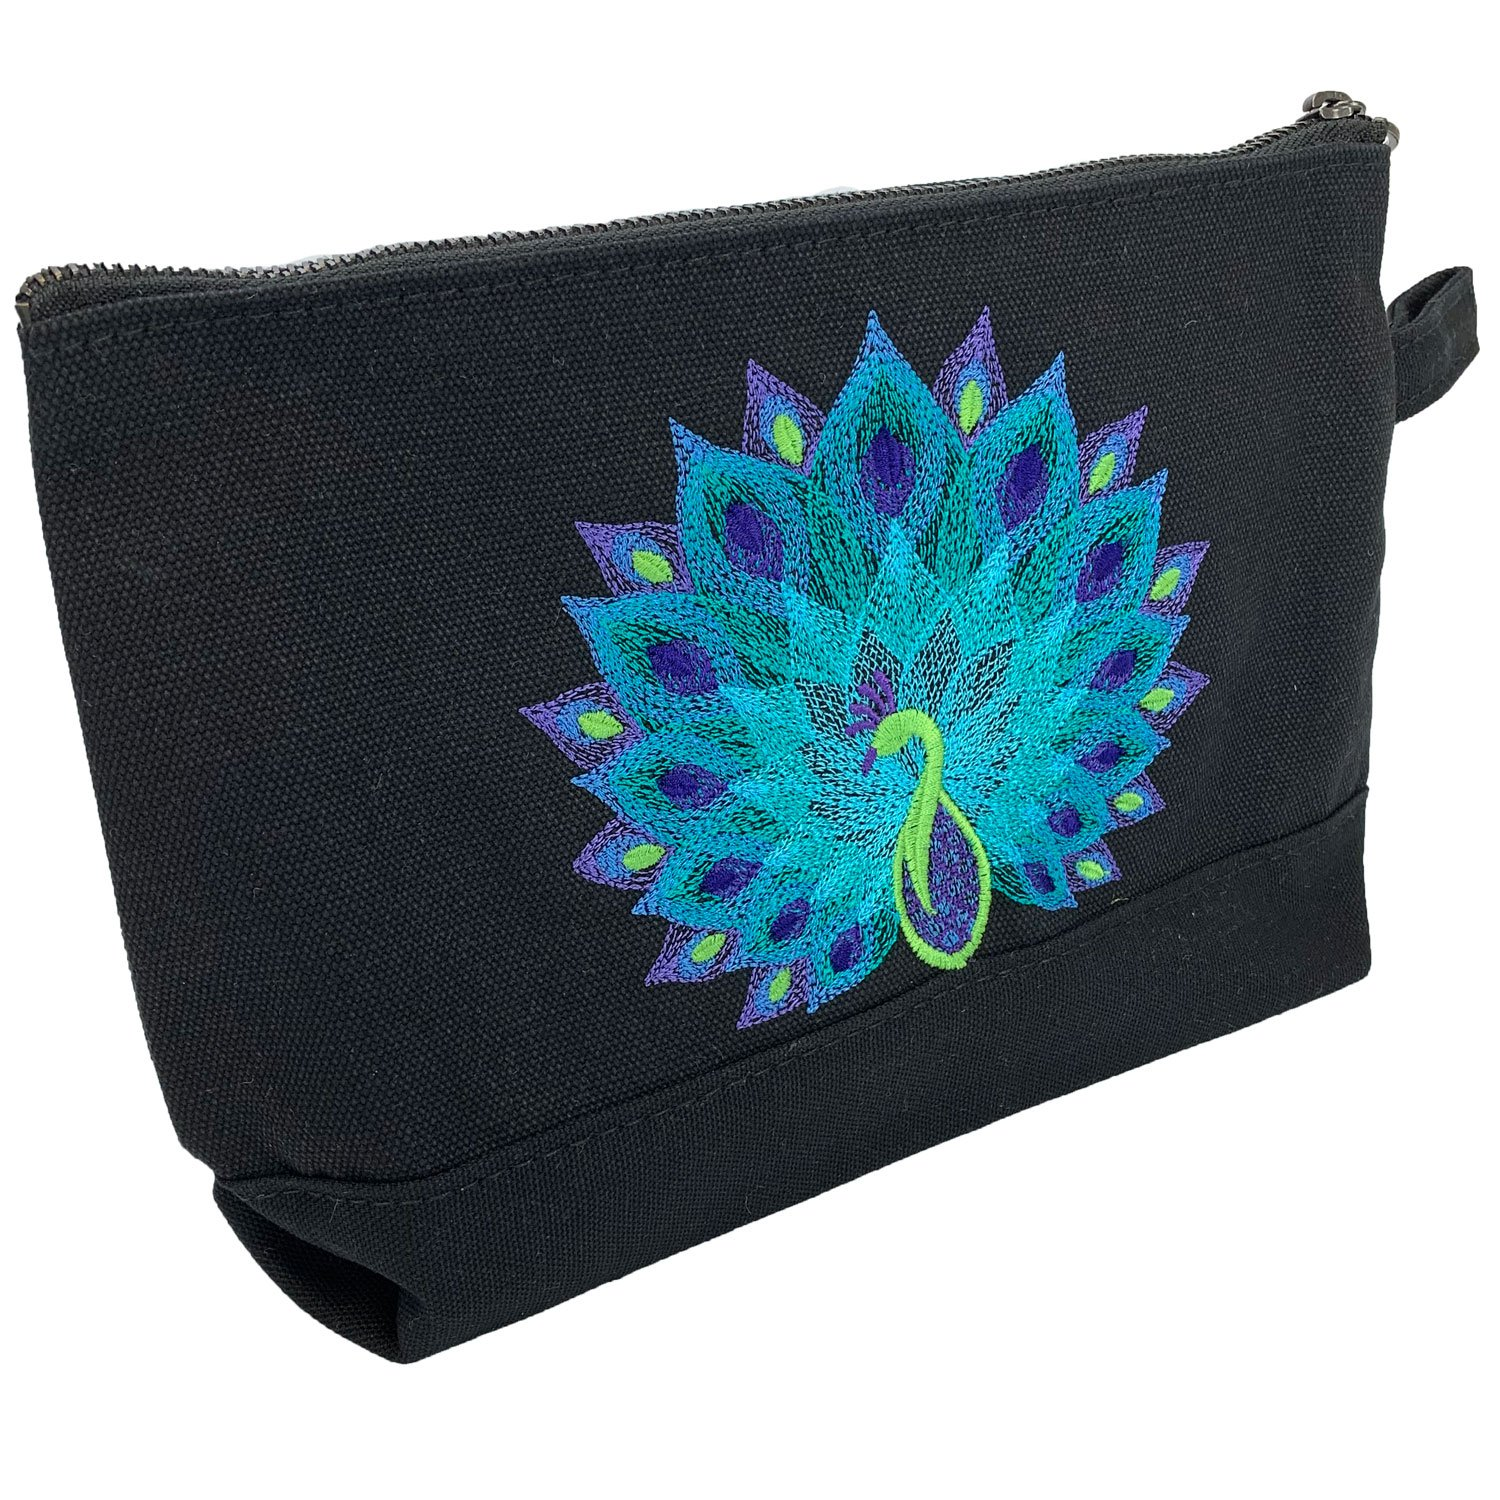 Embroidered Zip Pouch Black Peacock